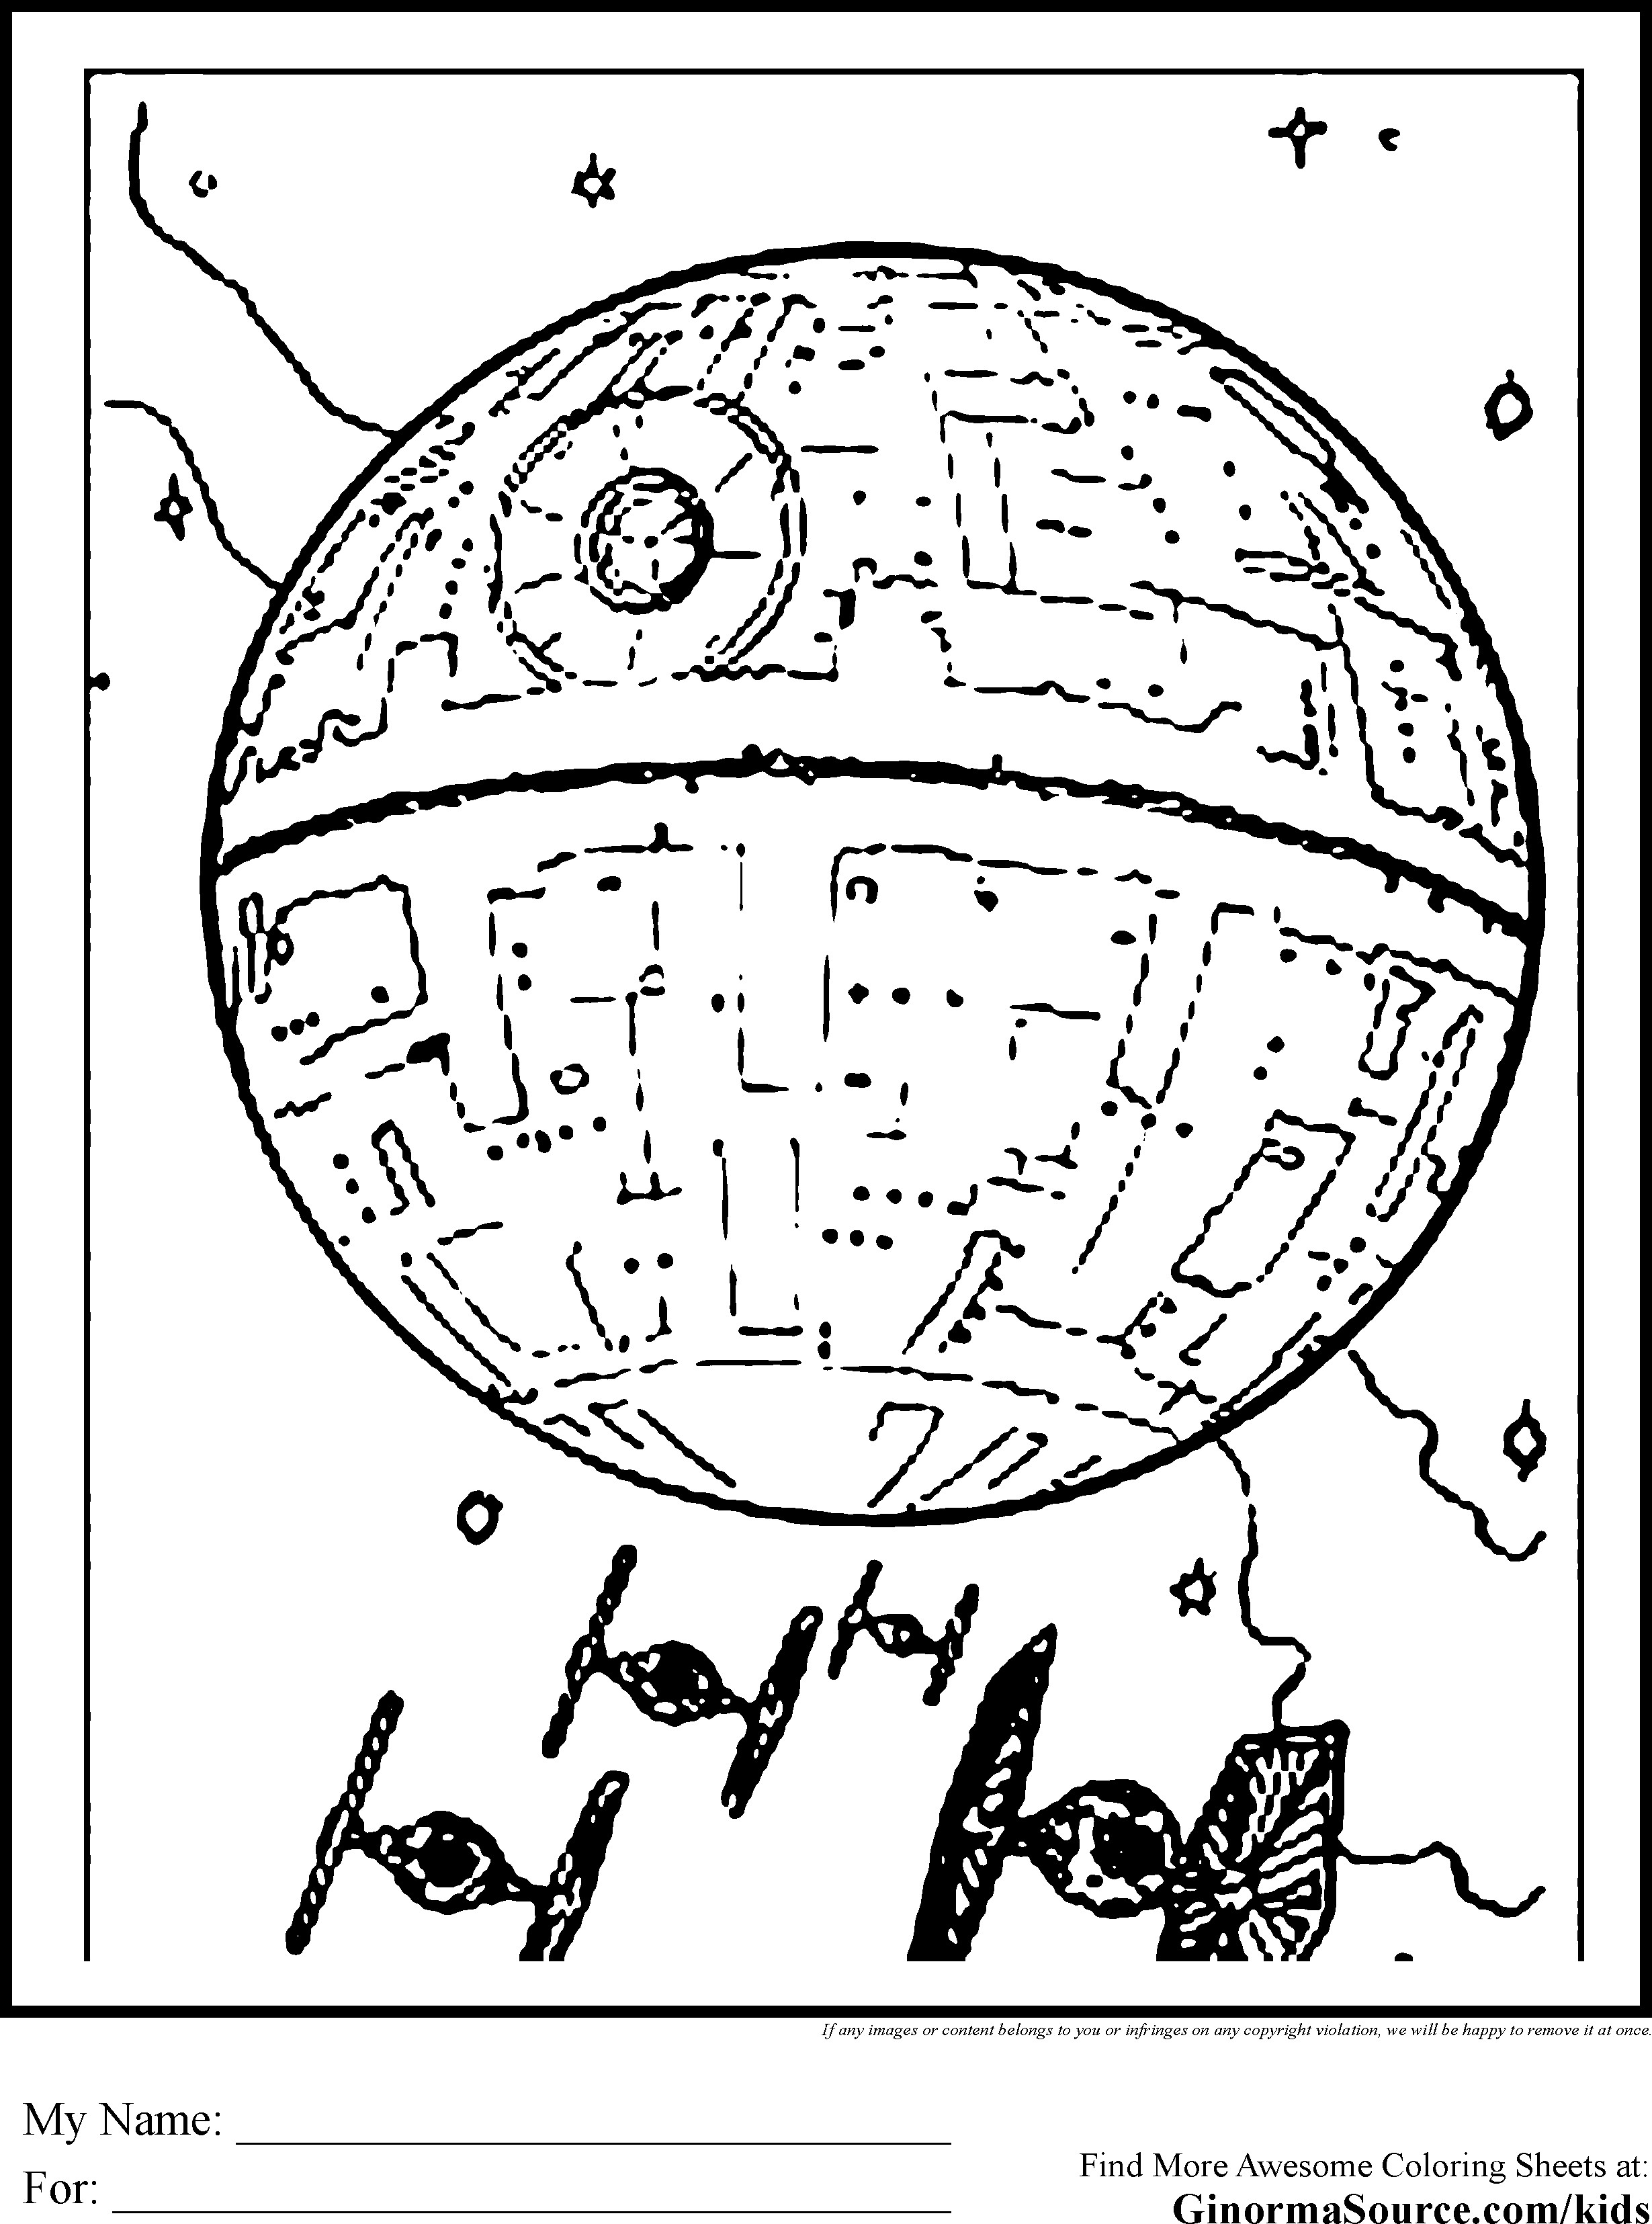 coloring pages with stars patrick starfish coloring pages coloring home stars pages coloring with